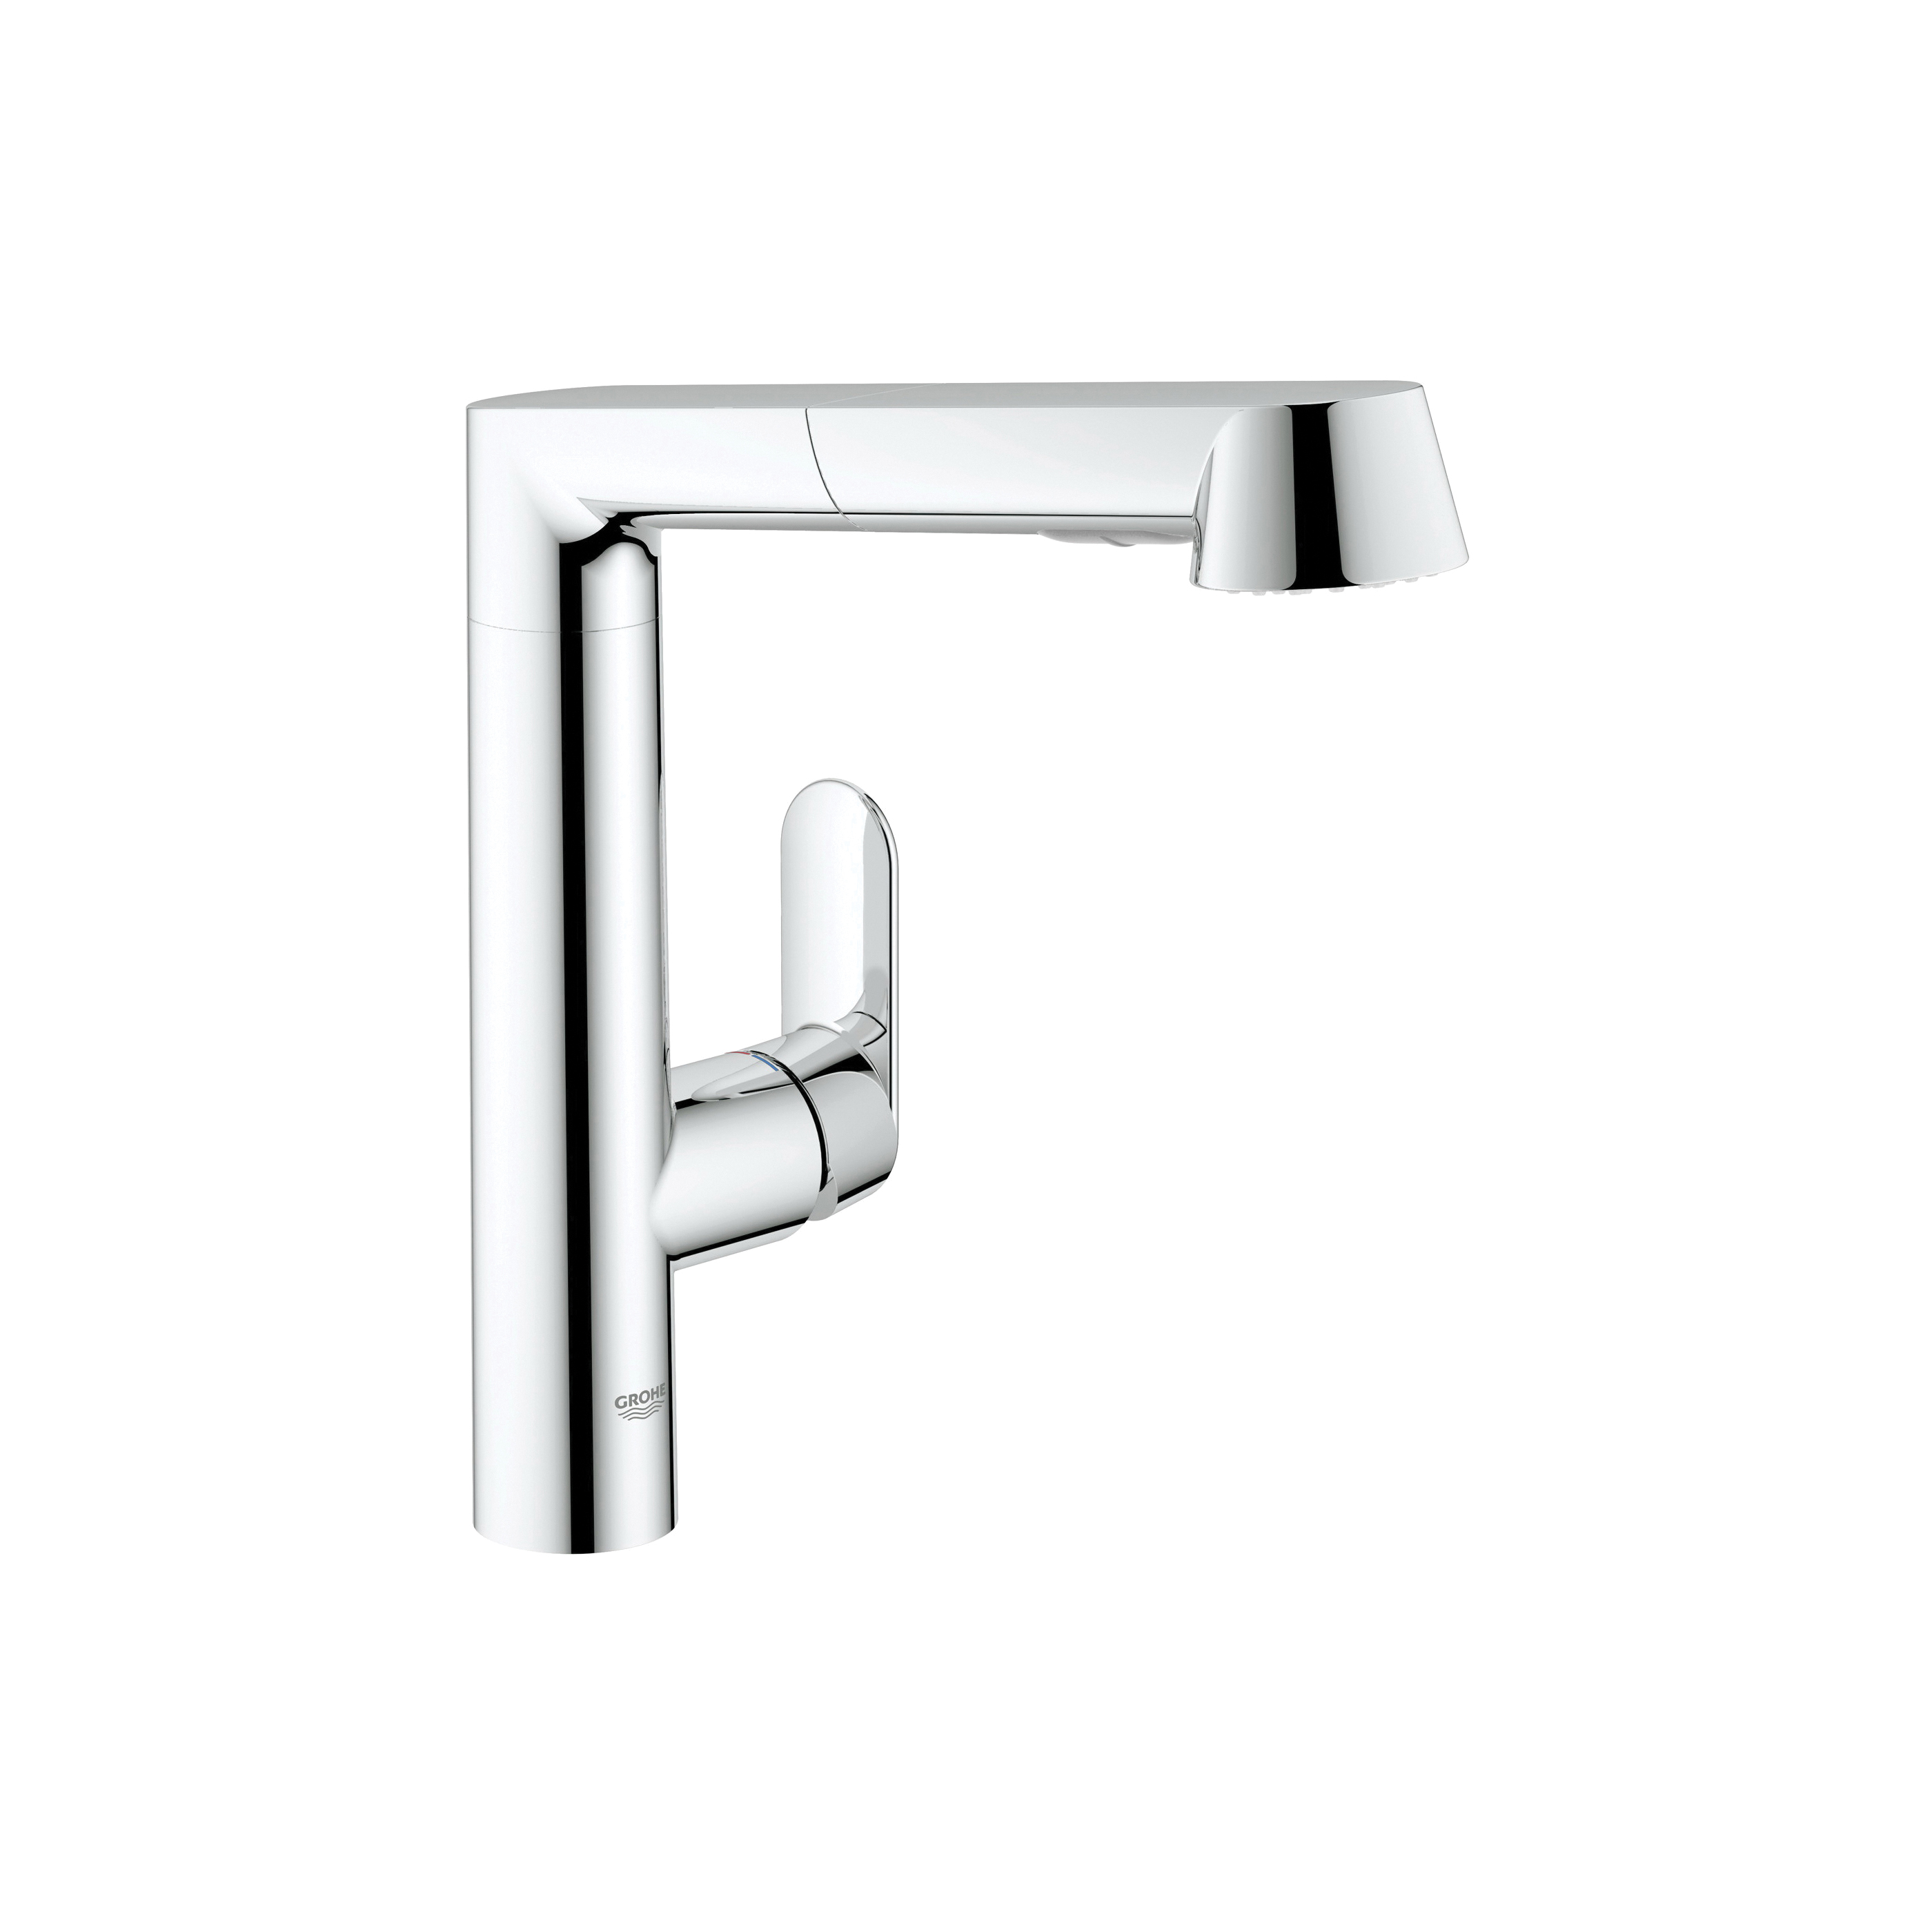 GROHE 32178000 K7 Sink Mixer, 1.75 gpm, 1 Handle, Chrome Plated, Import